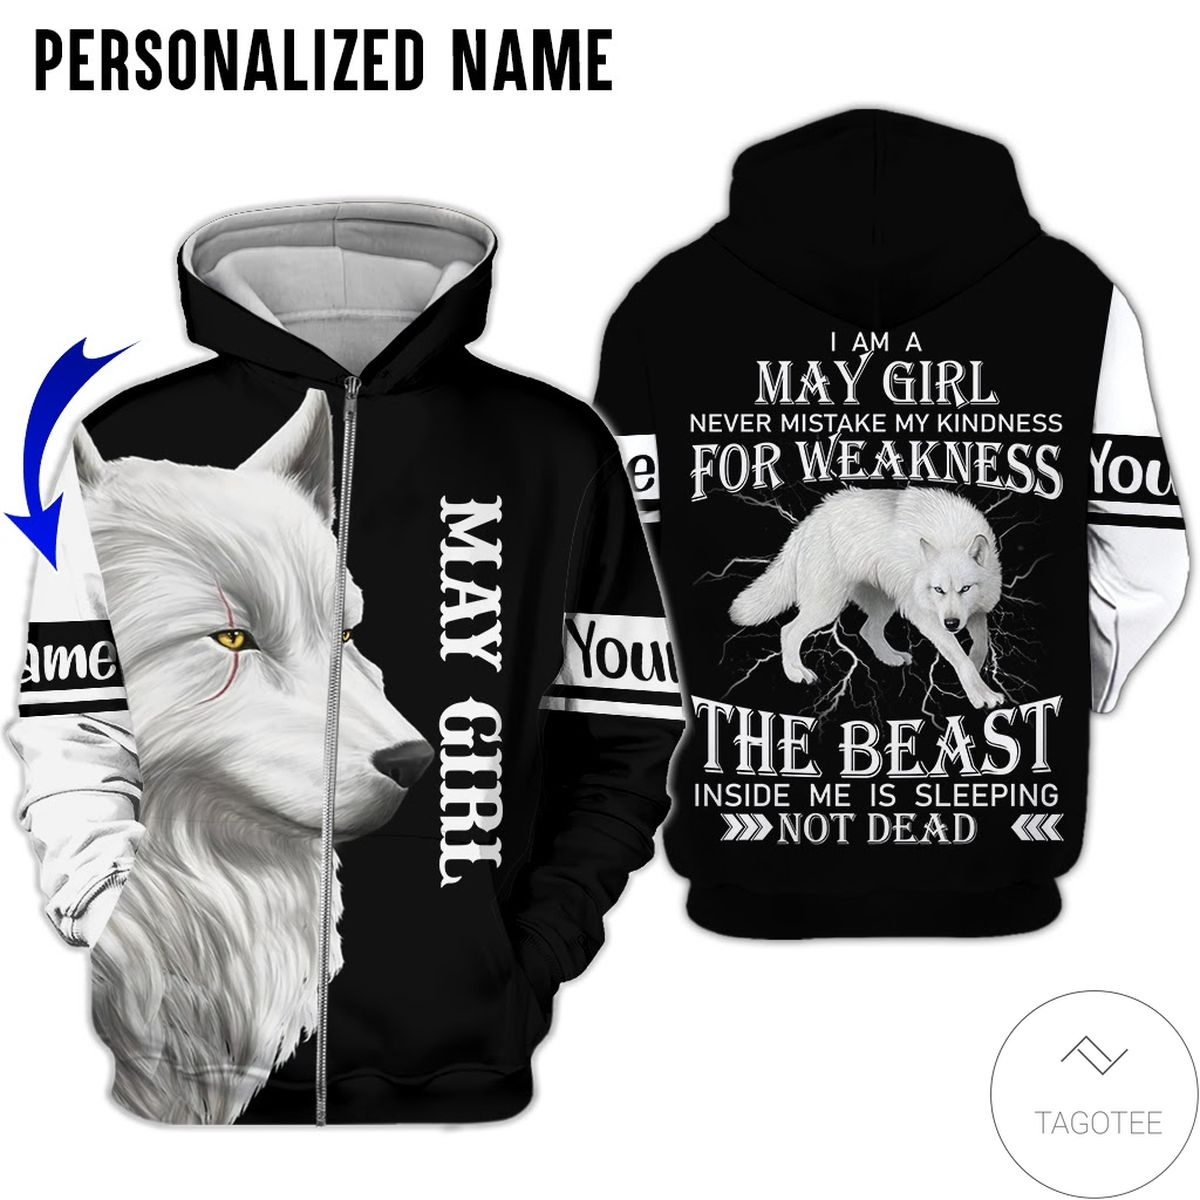 Print On Demand Personalized Name May Girl White Wolf The Beast Not Dead All Over Print Hoodie